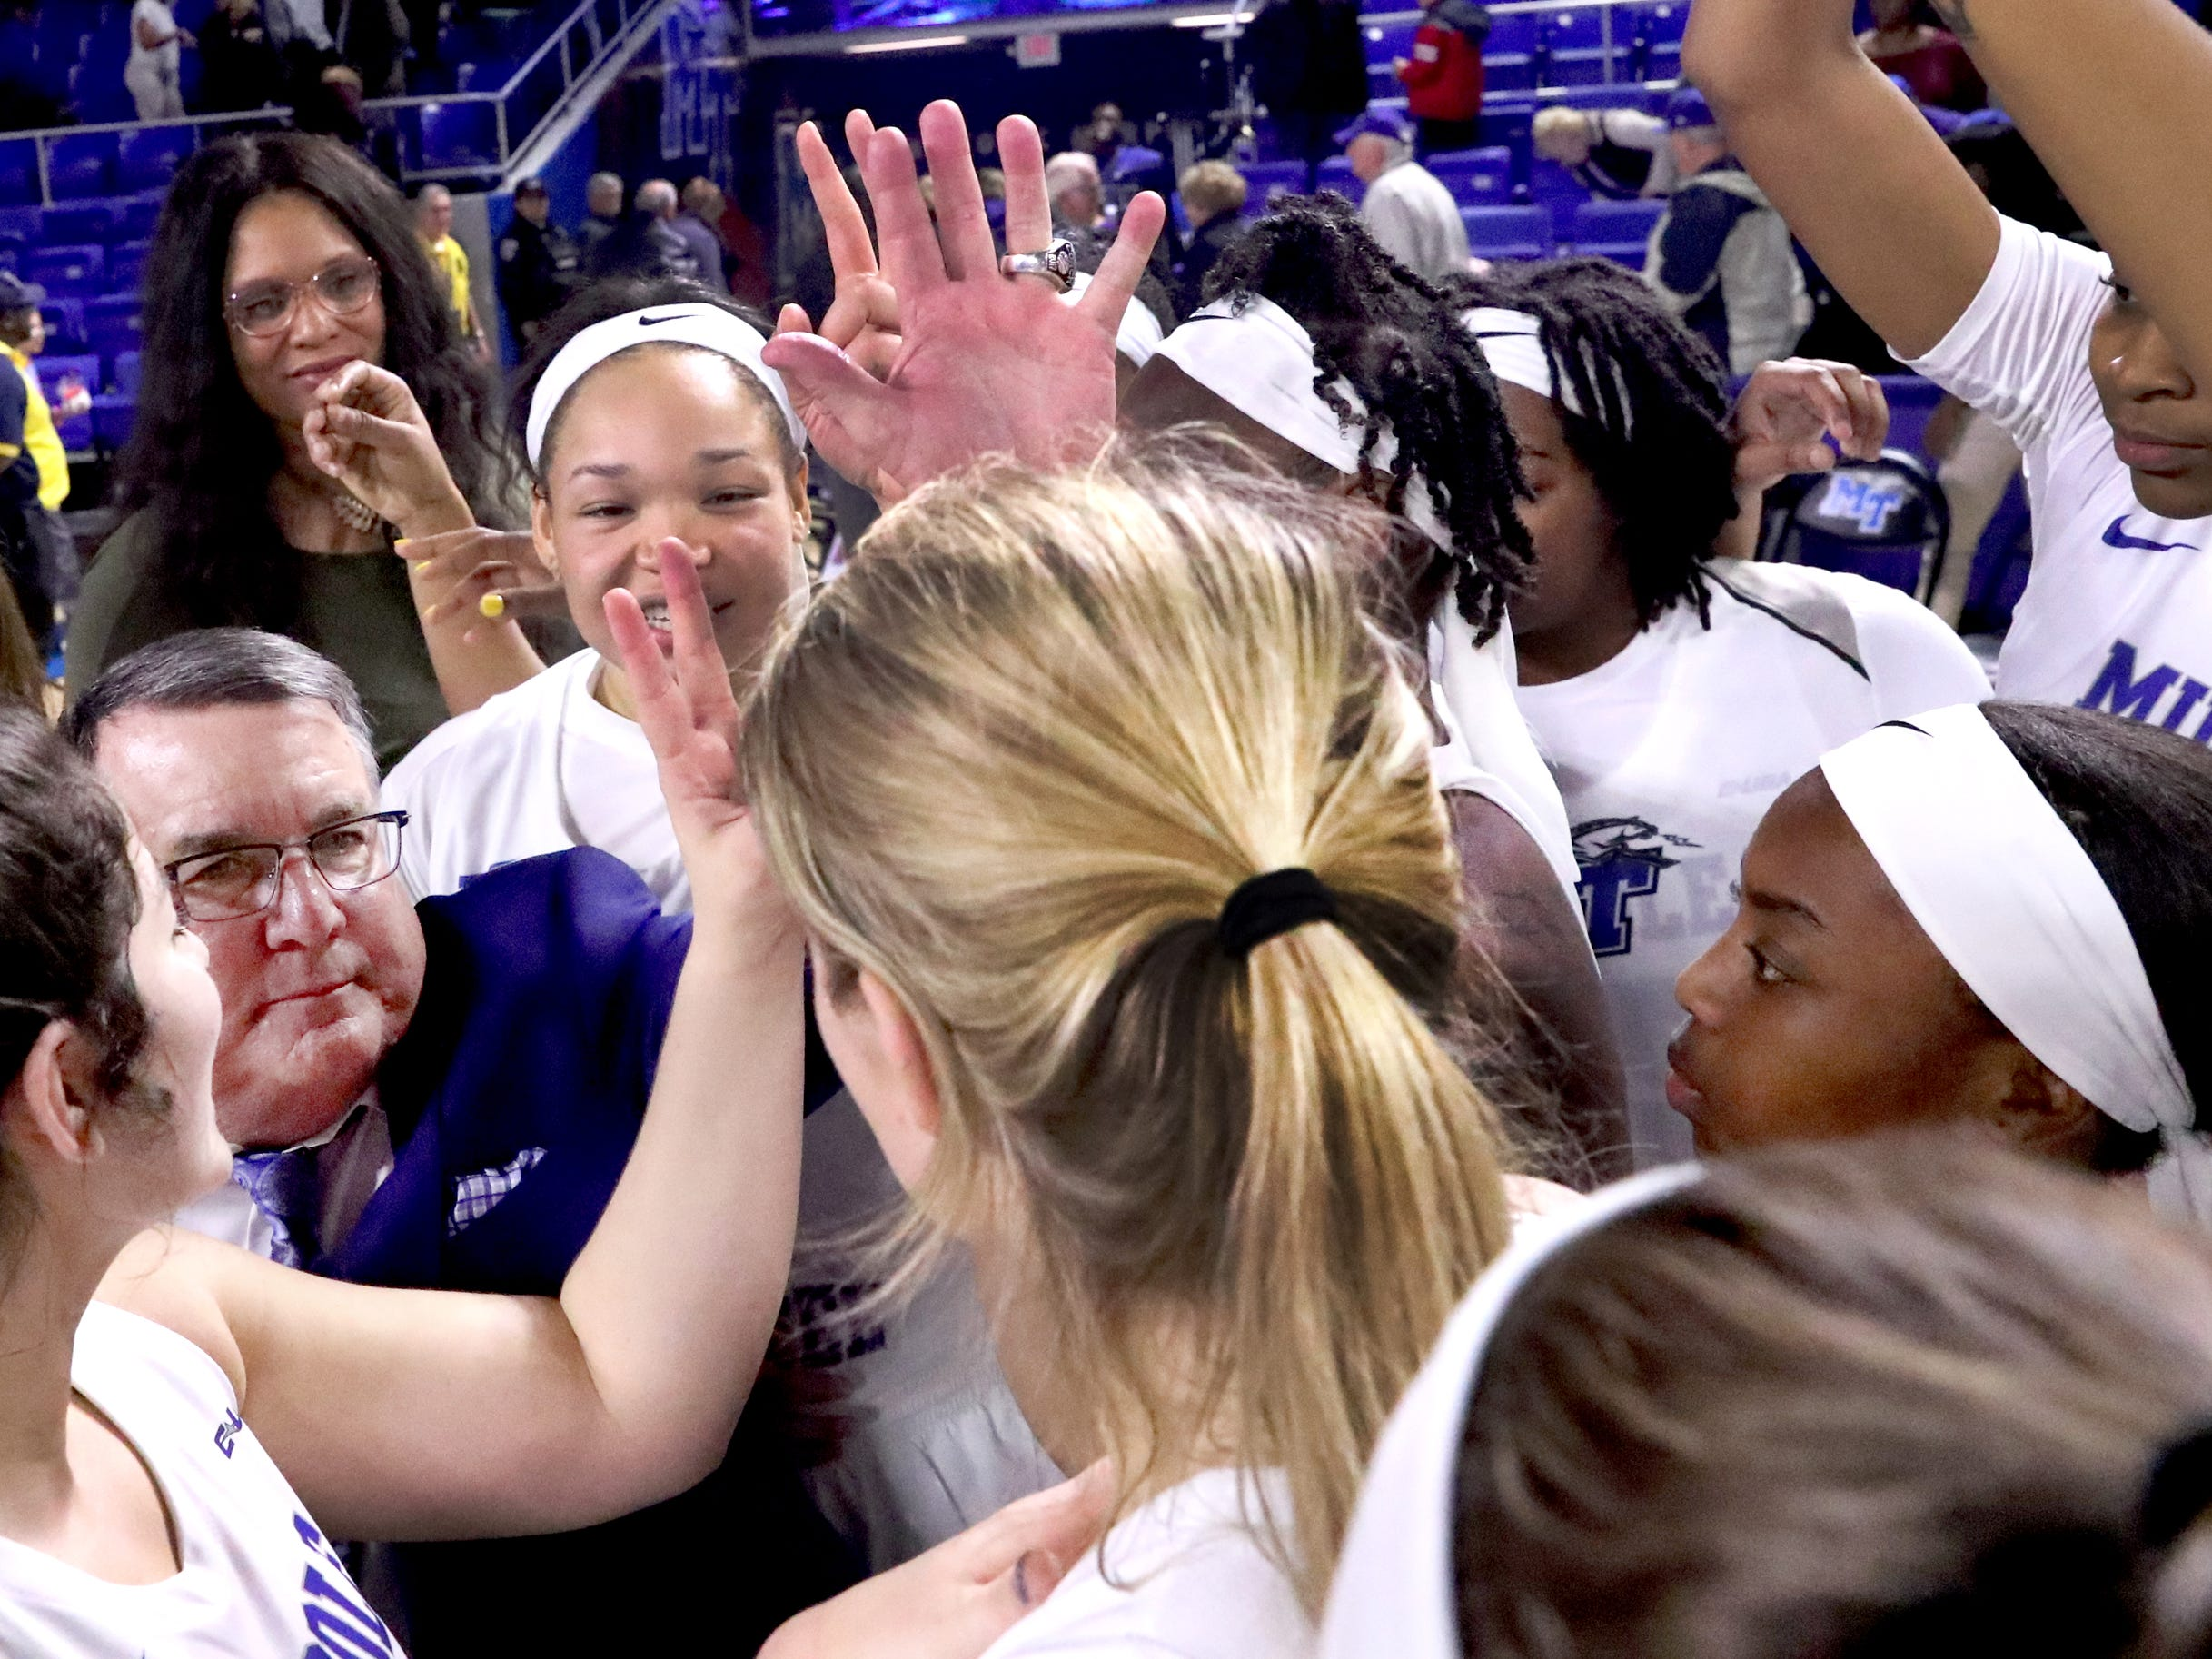 MTSU's head girls basketball Coach Rick Insell gathers with his team  to celebrate after beating Vanderbilt 65-58 during the women's home opening game at MTSU on Friday, Nov. 8, 2018.